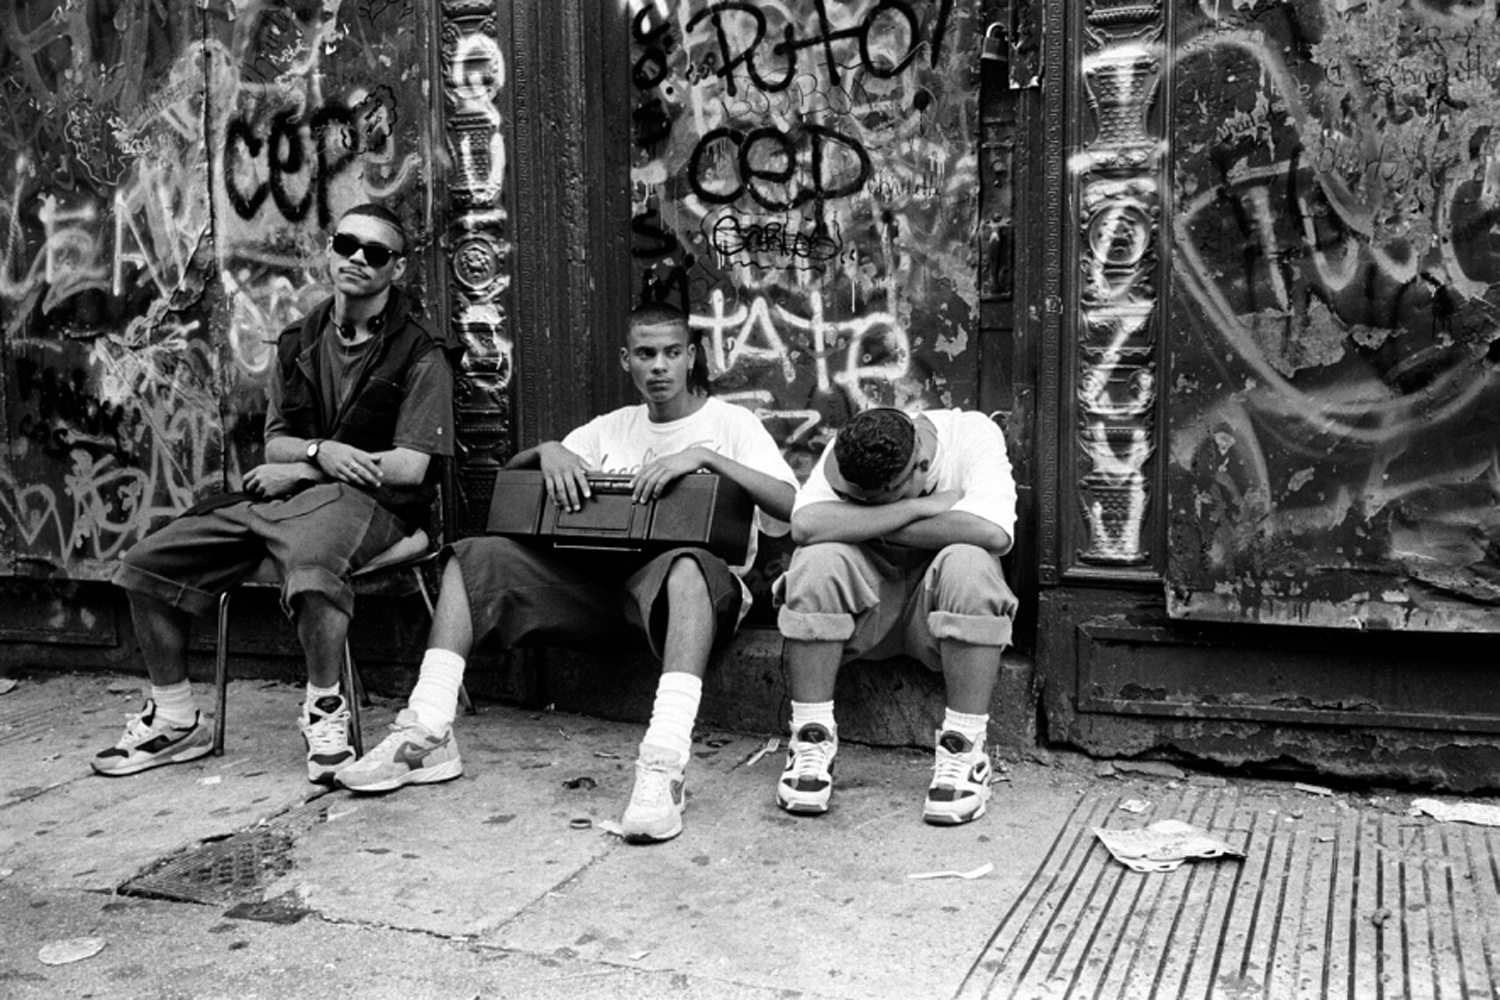 Hanging out with the radio, from Bronx Boys (FotoEvidence, 2011) by Stephen Shames.